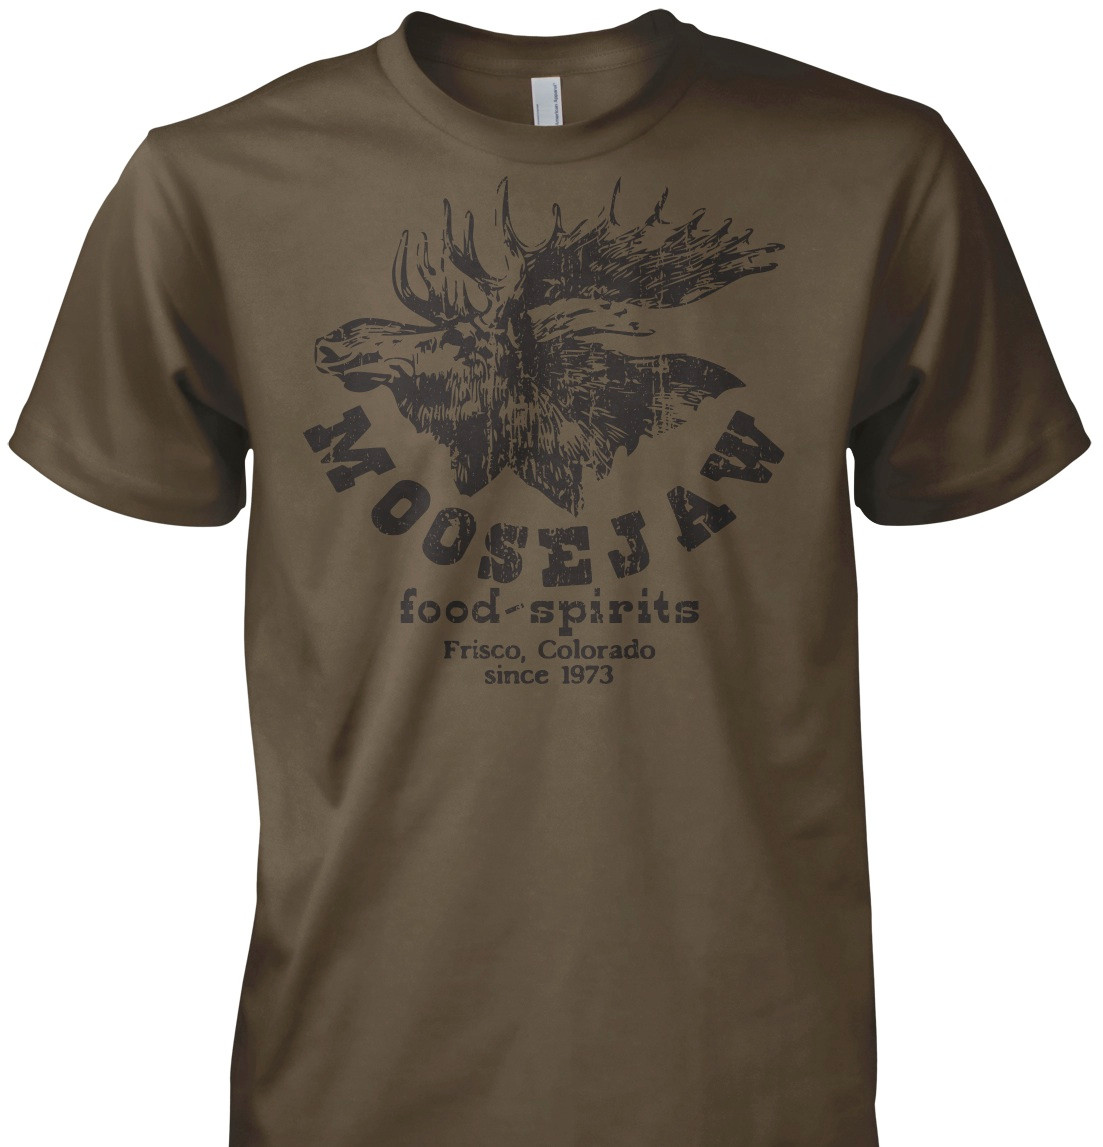 b25e37568854 Army Moose Jaw T-shirt. Larger   More Photos